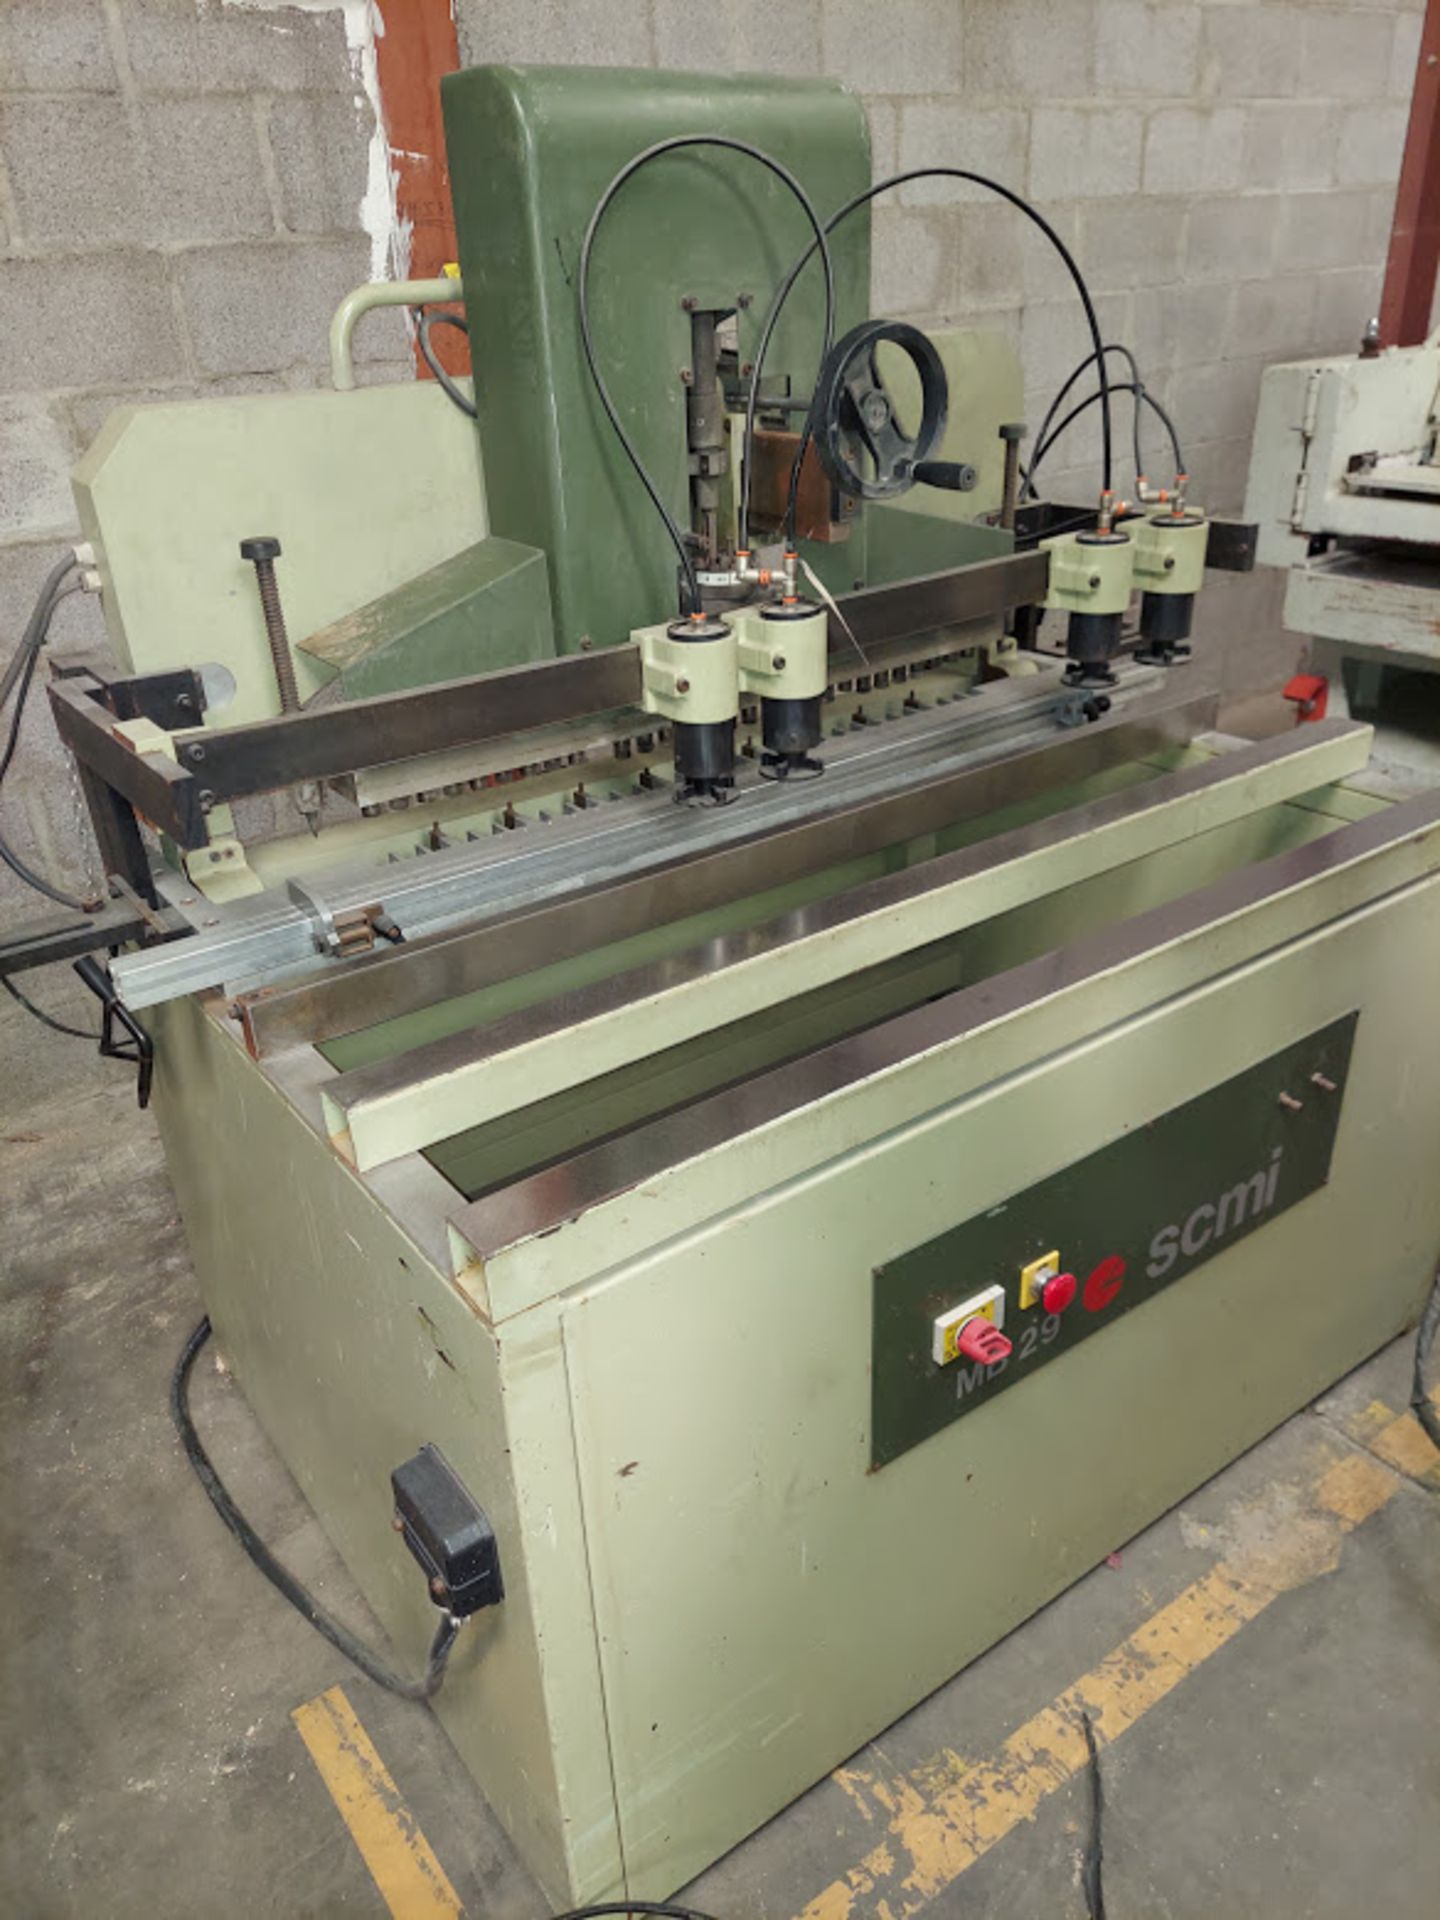 SCMI Construction Line Boring Machine, Model #MB29, 29 Spindles, 230 Volts 3 Phase - Image 5 of 6